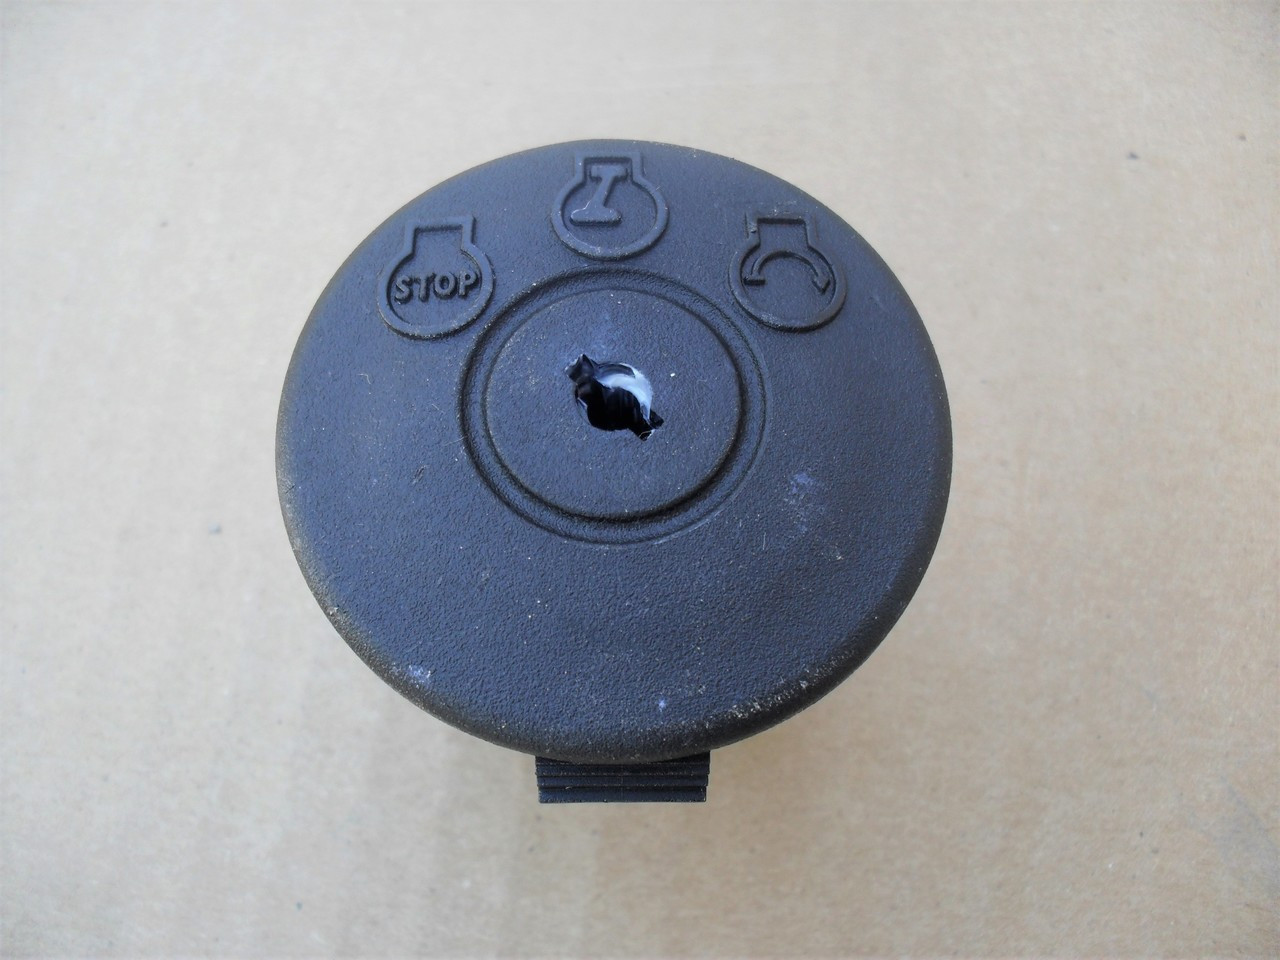 Delta Ignition Starter Switch 690037M, 6900-37M Lawn Mower, Includes Key, Made In USA